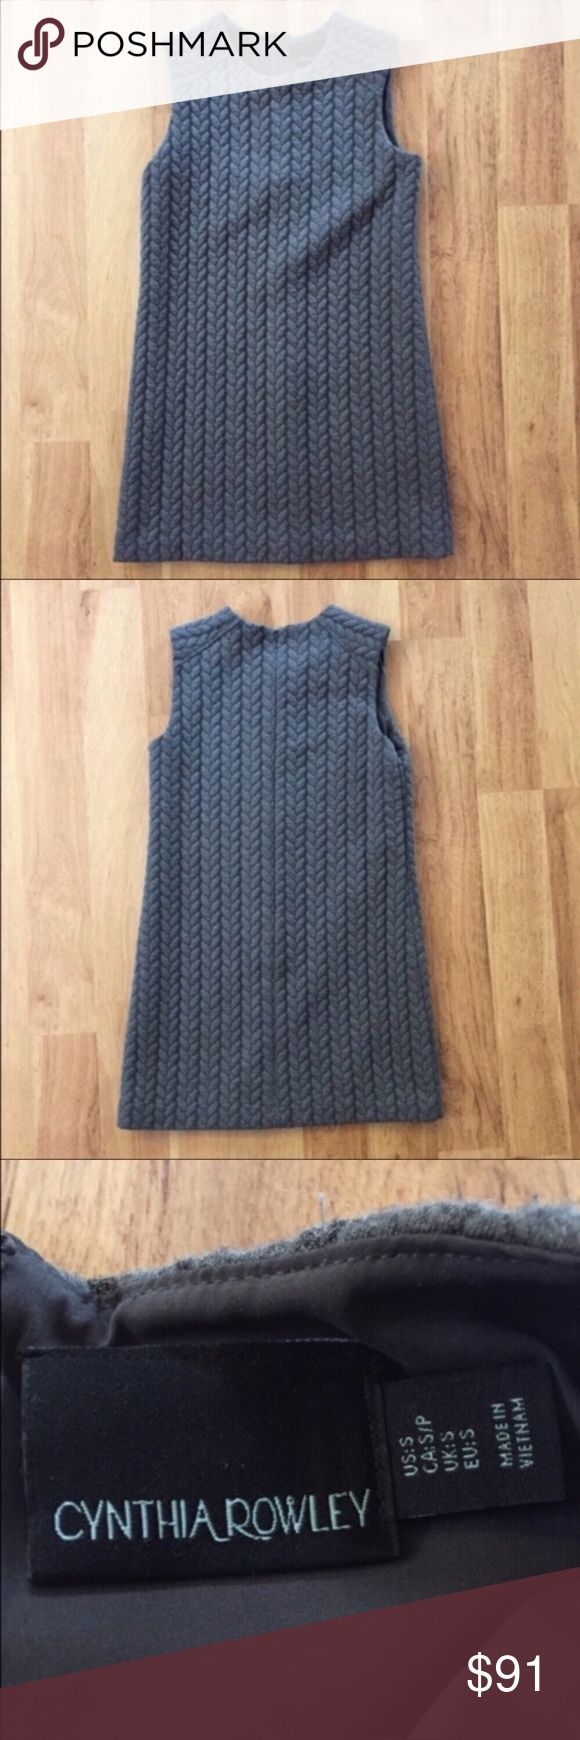 Cynthia Rowley Gray Braided Sweater Dress Size S ⚜️I love receiving offers through the offer button!⚜️ Good condition, as seen in pictures! Fast same or next day shipping!📨 Open to offers but I don't negotiate in the comments so please use the offer button😊 length from shoulder to hem is 32 inches. Over the bust left to right it's 13 inches. Check out the rest of my closet for more Adidas, Lululemon, Tory Burch, Urban Outfitters, Free People, Anthropologie, Victoria's Secret, Topshop…